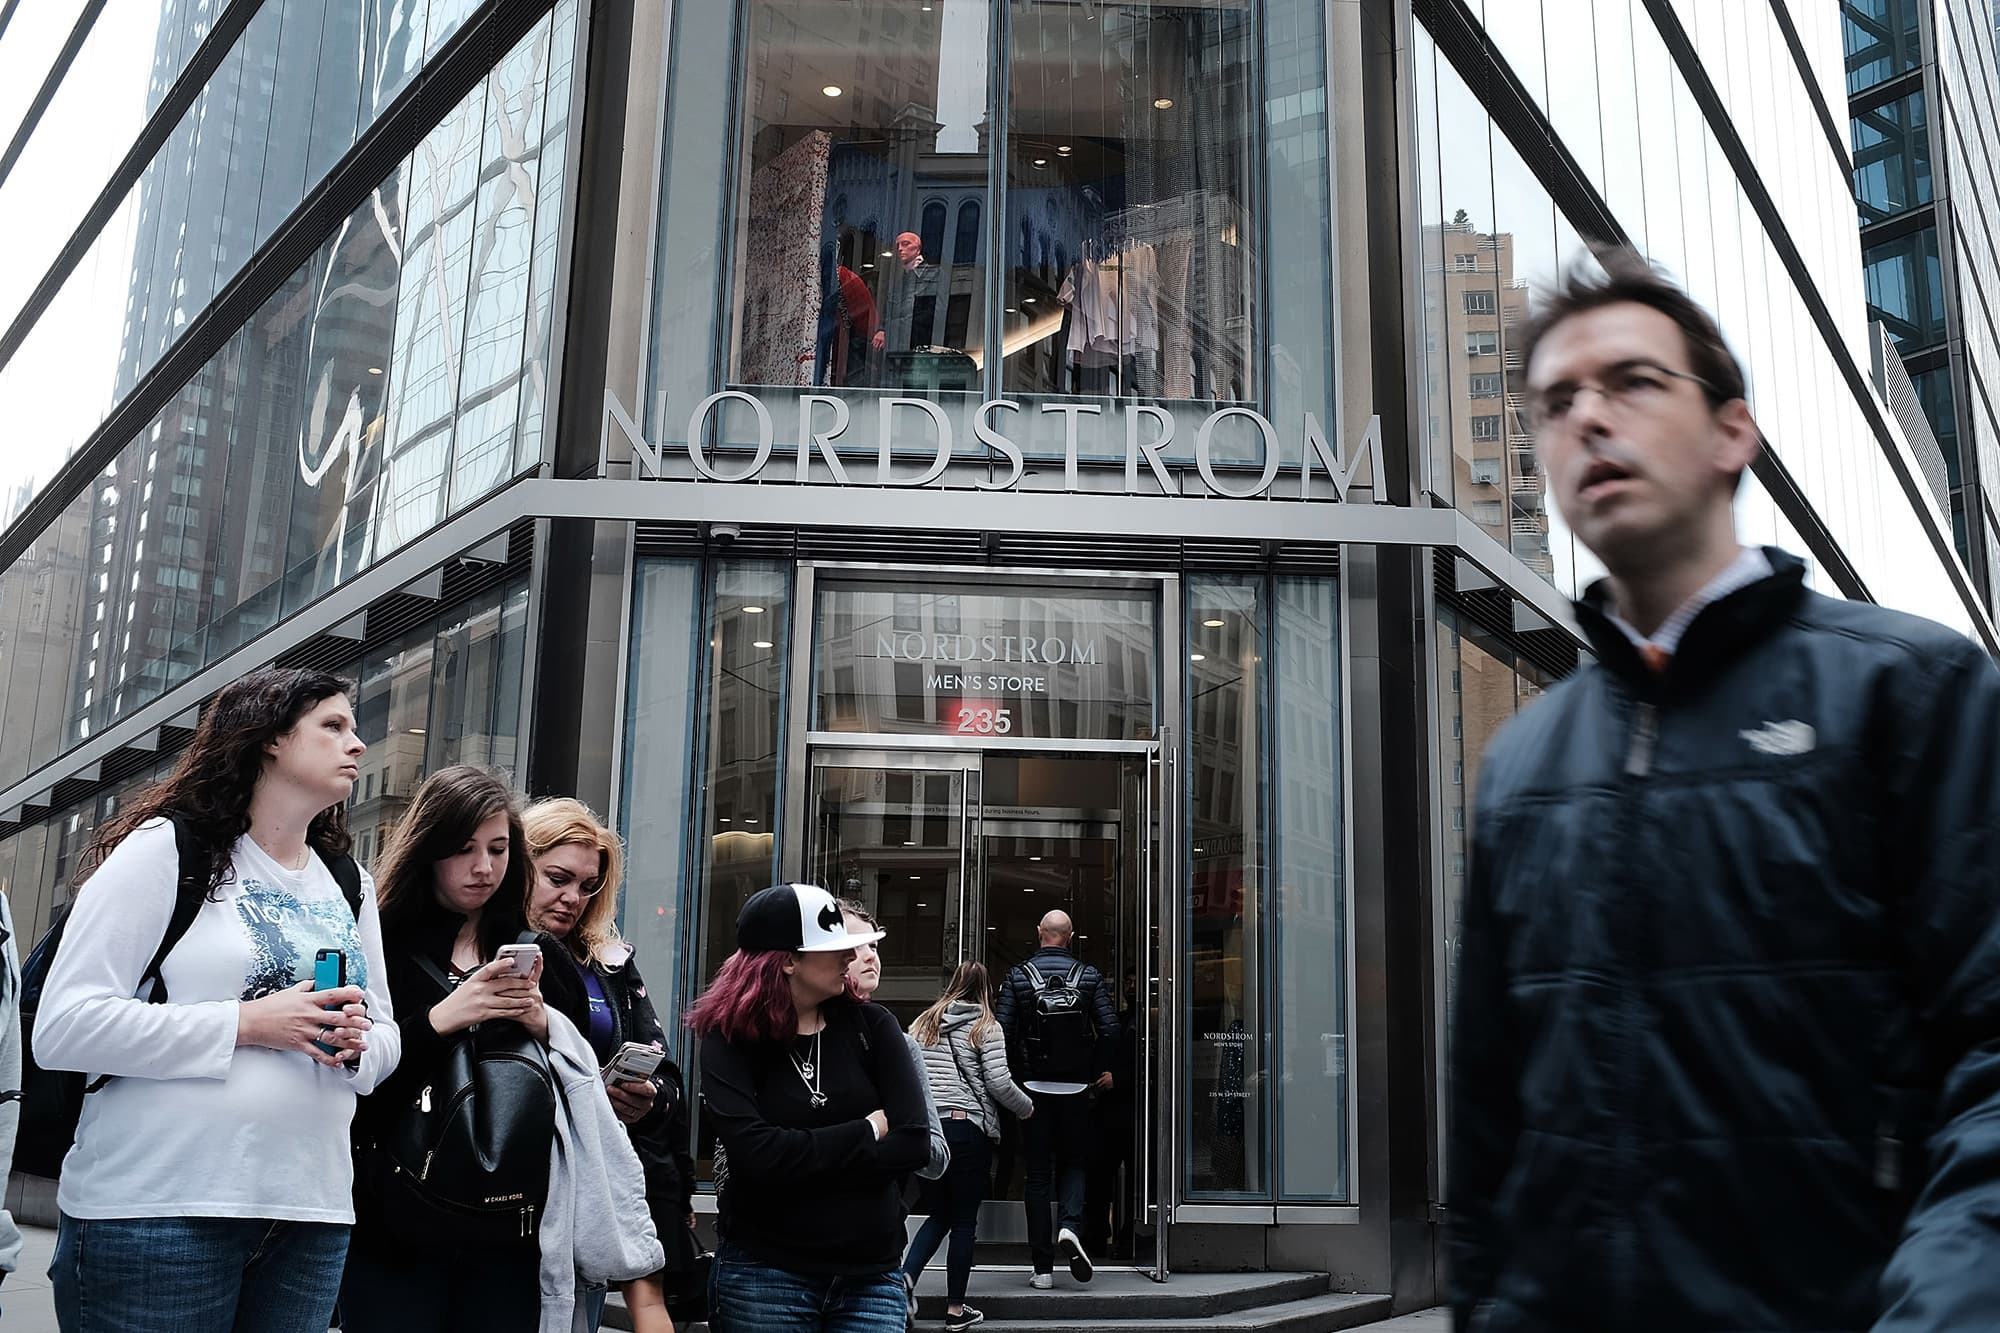 People walk by the Nordstrom men's store, the company's first-ever Manhattan location in midtown at 57th and Broadway on April 12, 2018 in New York City.